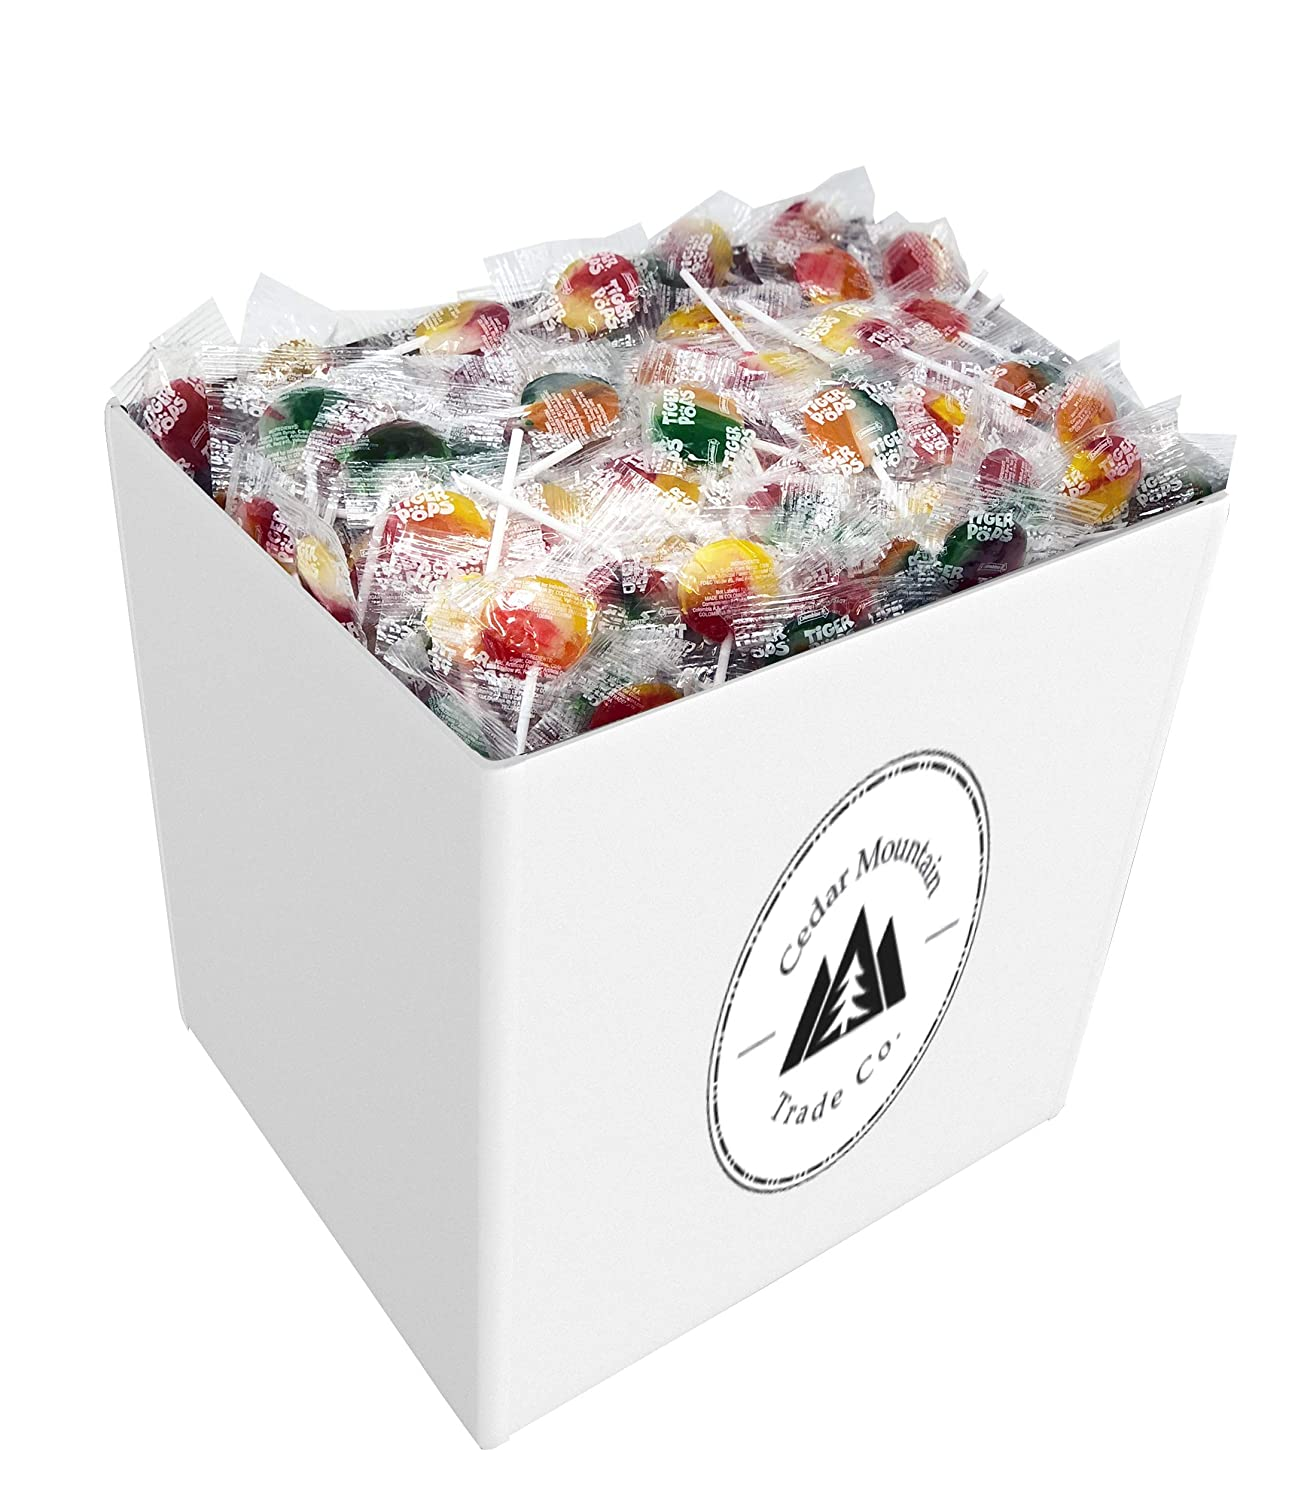 Bulk Individually Wrapped Lollipops - 5 lb. Assorted Flavors of Mixed Fruit Suckers - Bulk Candy, Fine Swirl Lollipop Candy for Adults & Kids in Businesses & Schools